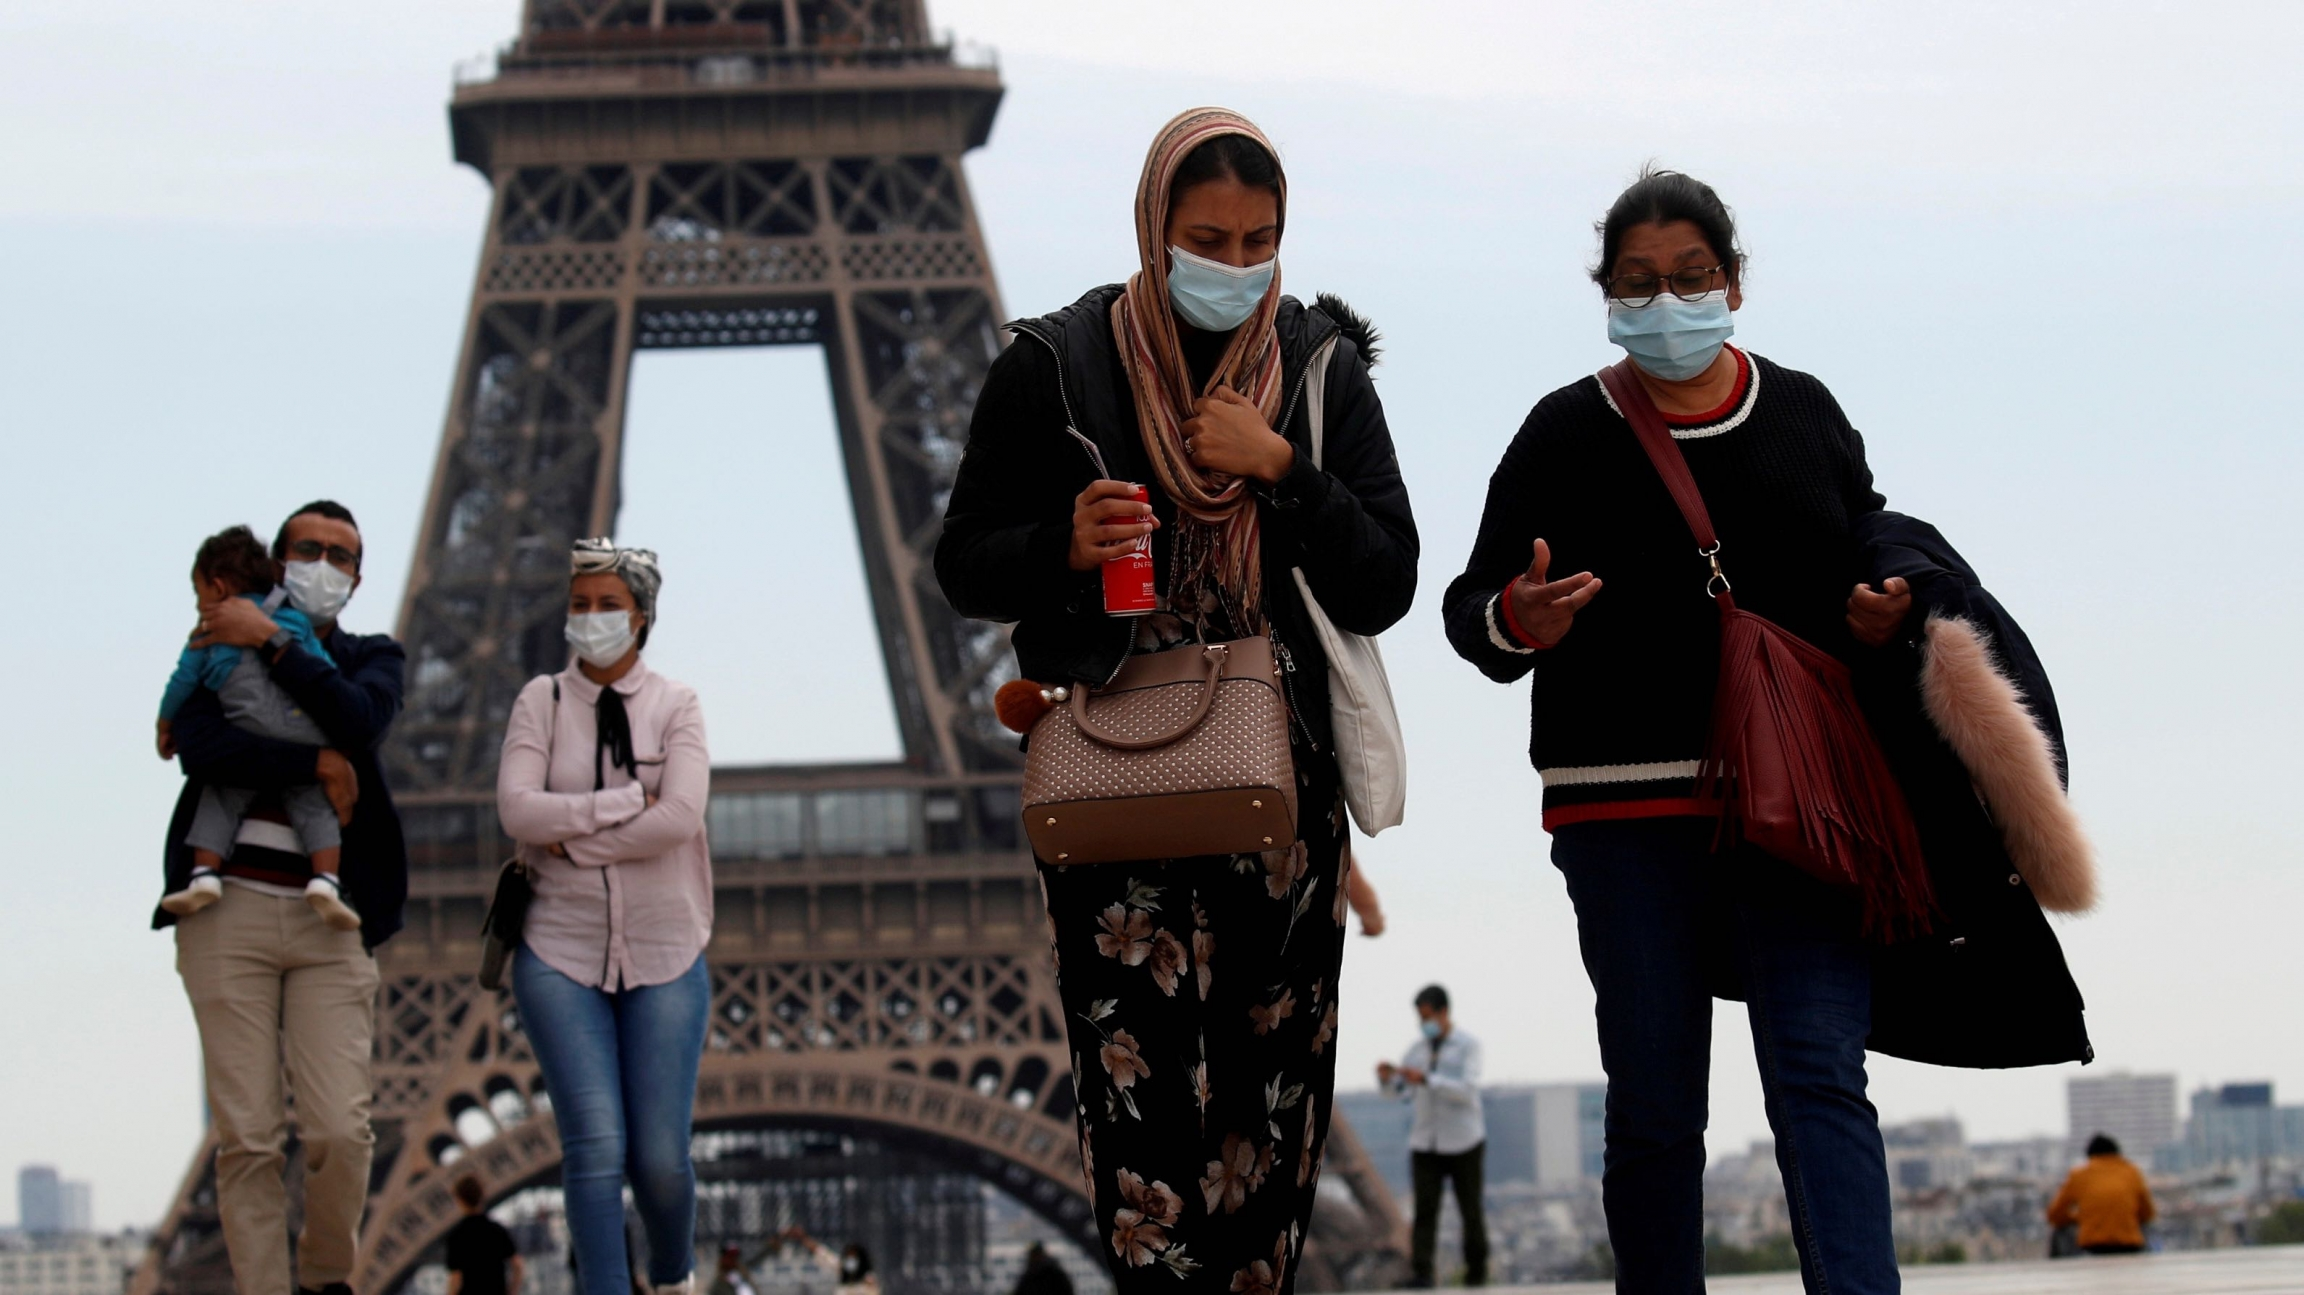 People wearing face masks walk at Trocadero square near the Eiffel Tower, as France began a gradual end to a nationwide lockdown due to the coronavirus disease (COVID-19) in Paris, May 16, 2020.